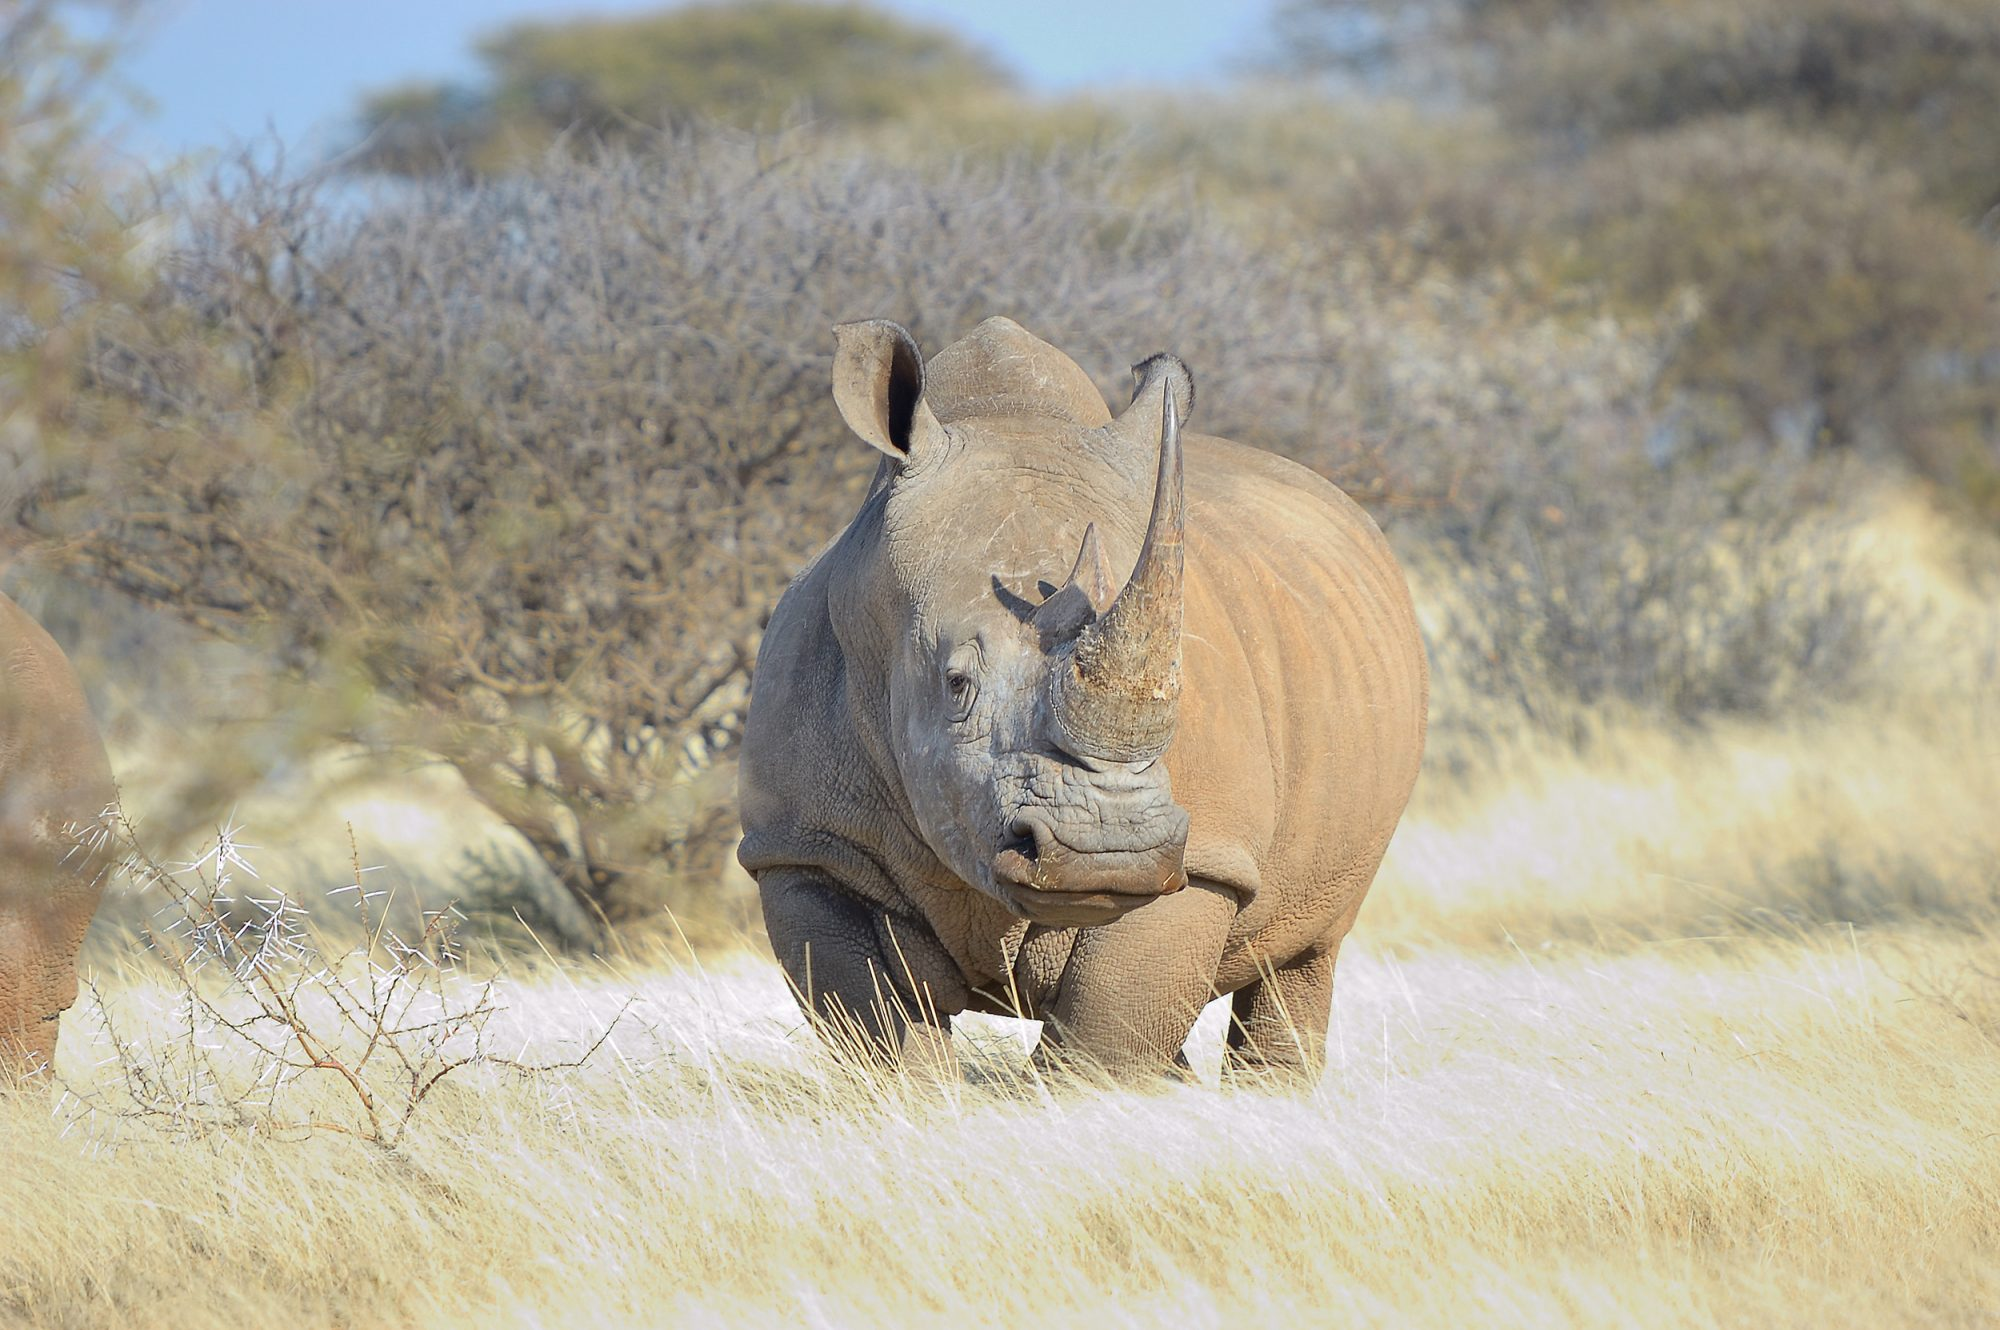 Has rhino gone extinct after 55 million years on Earth?